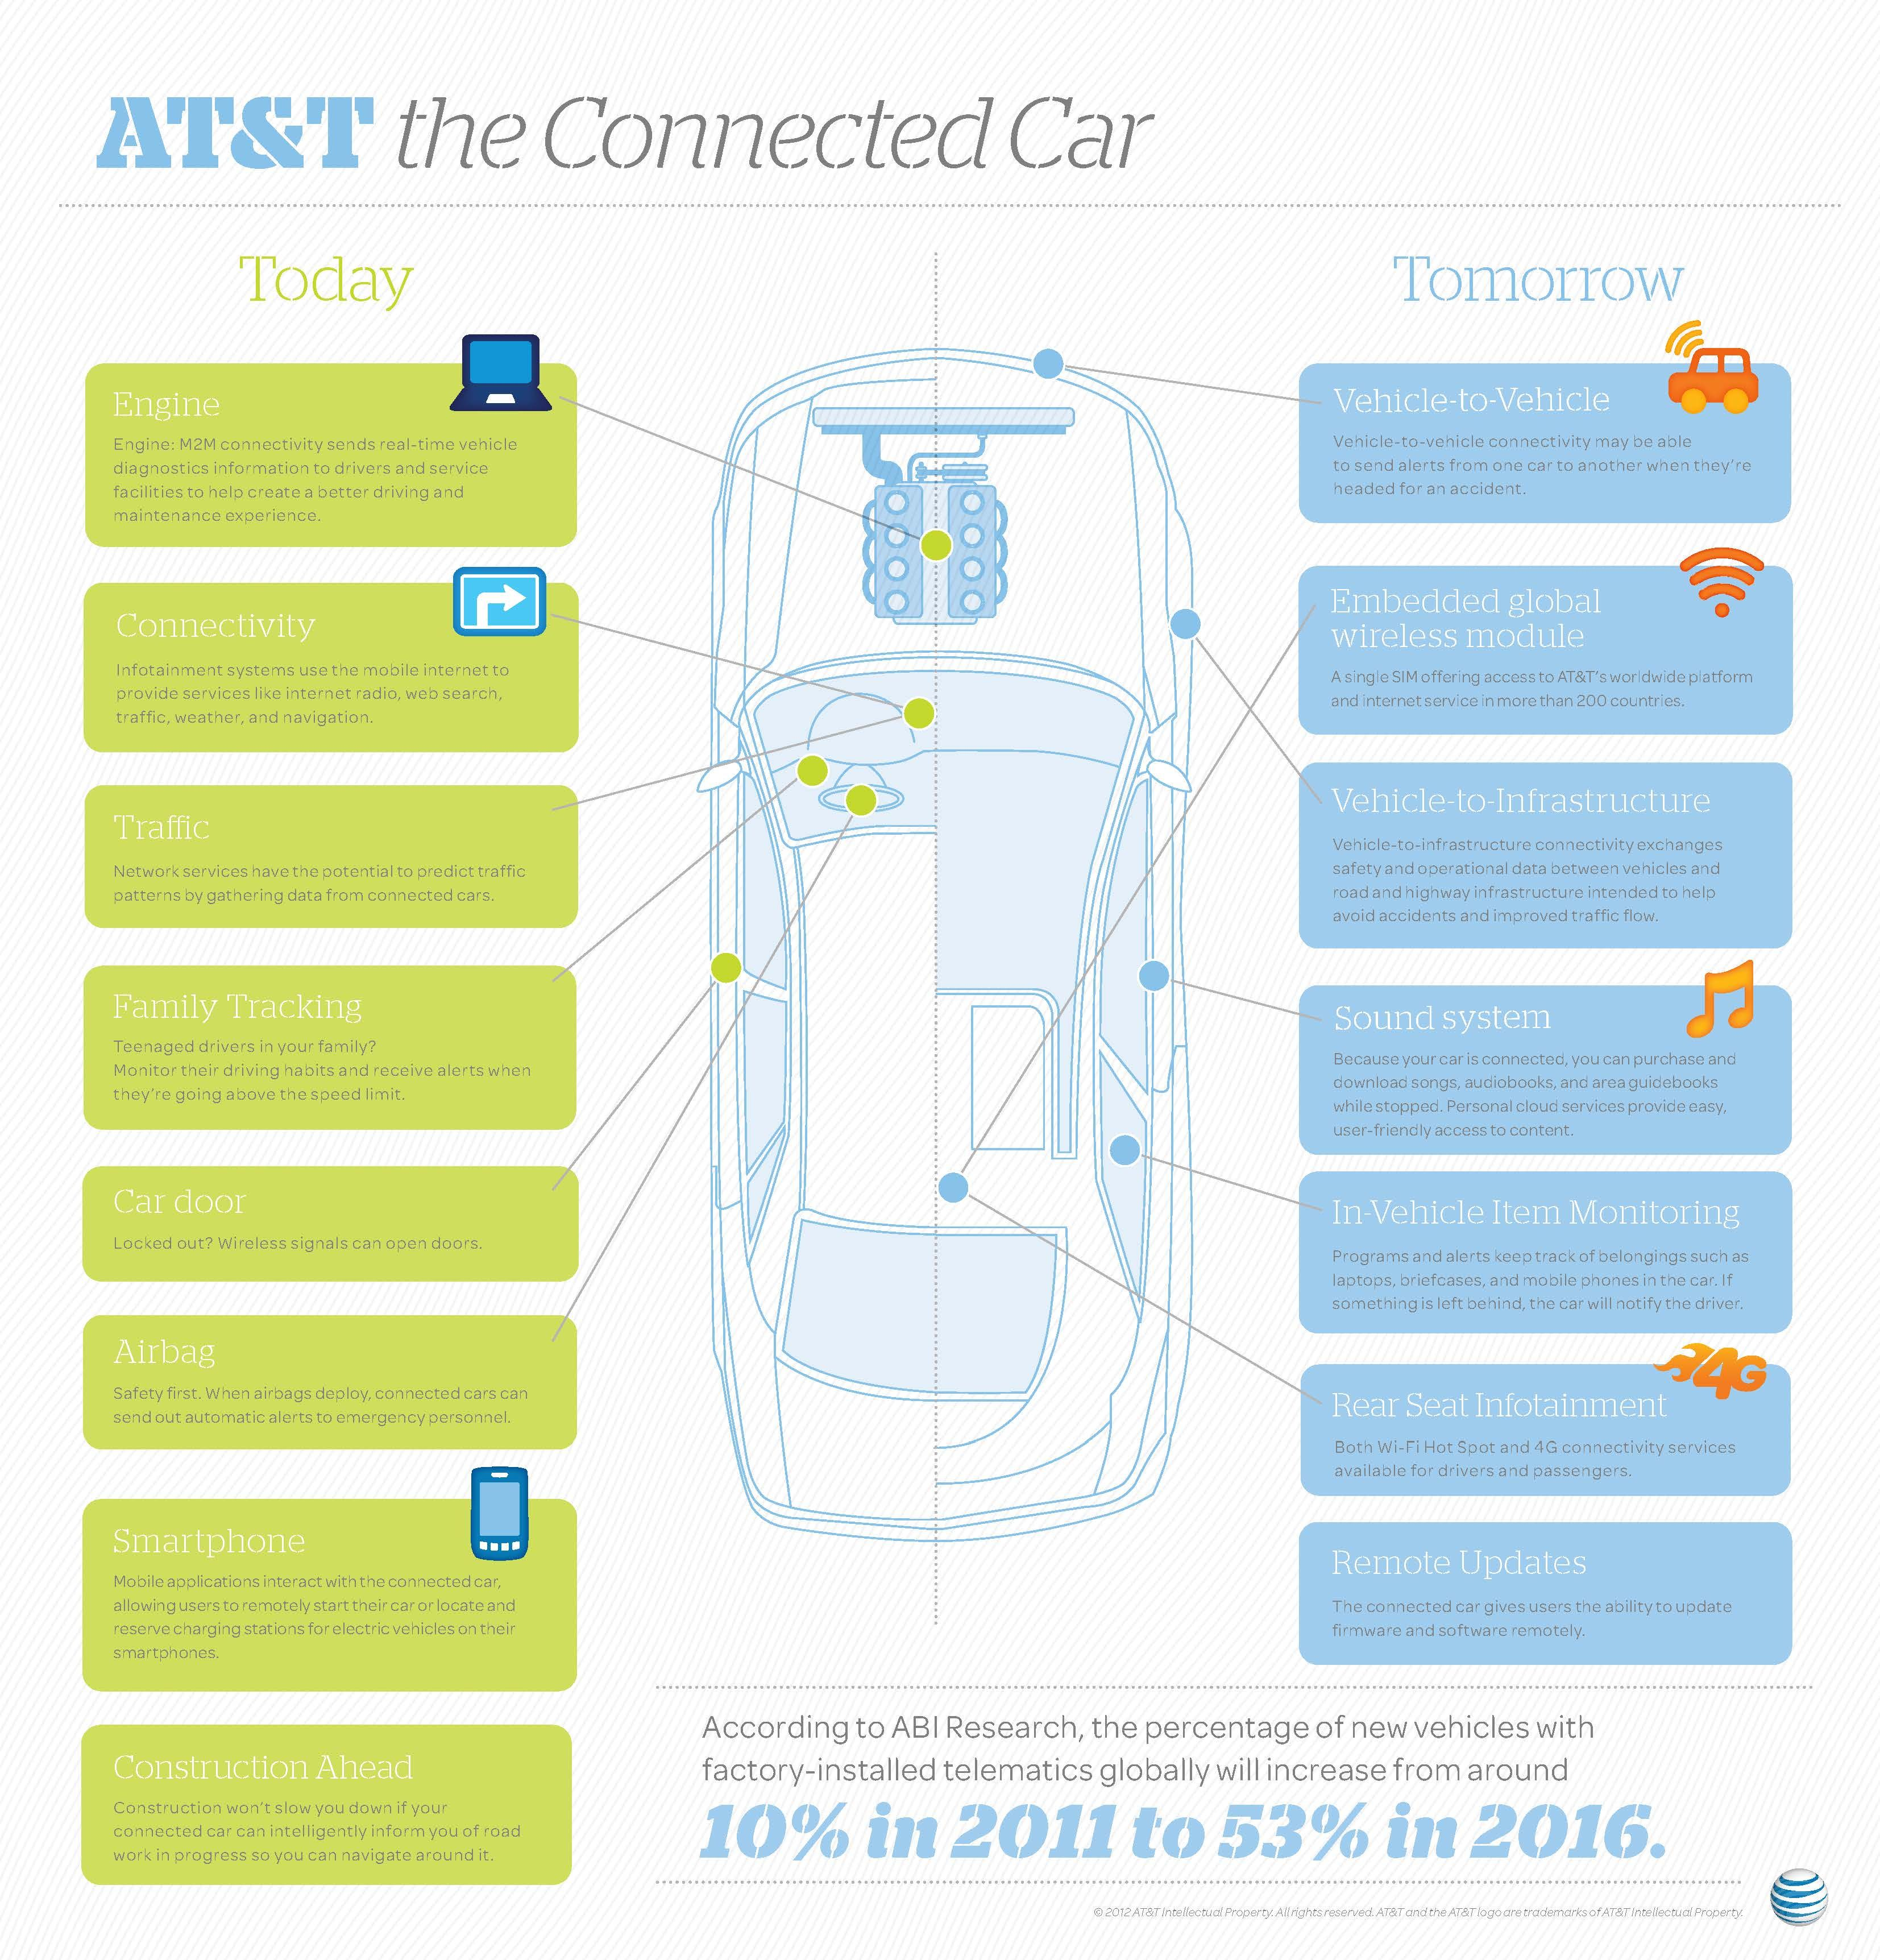 The Connected Car - iNFOGRAPHiCs MANiA | Car and motor